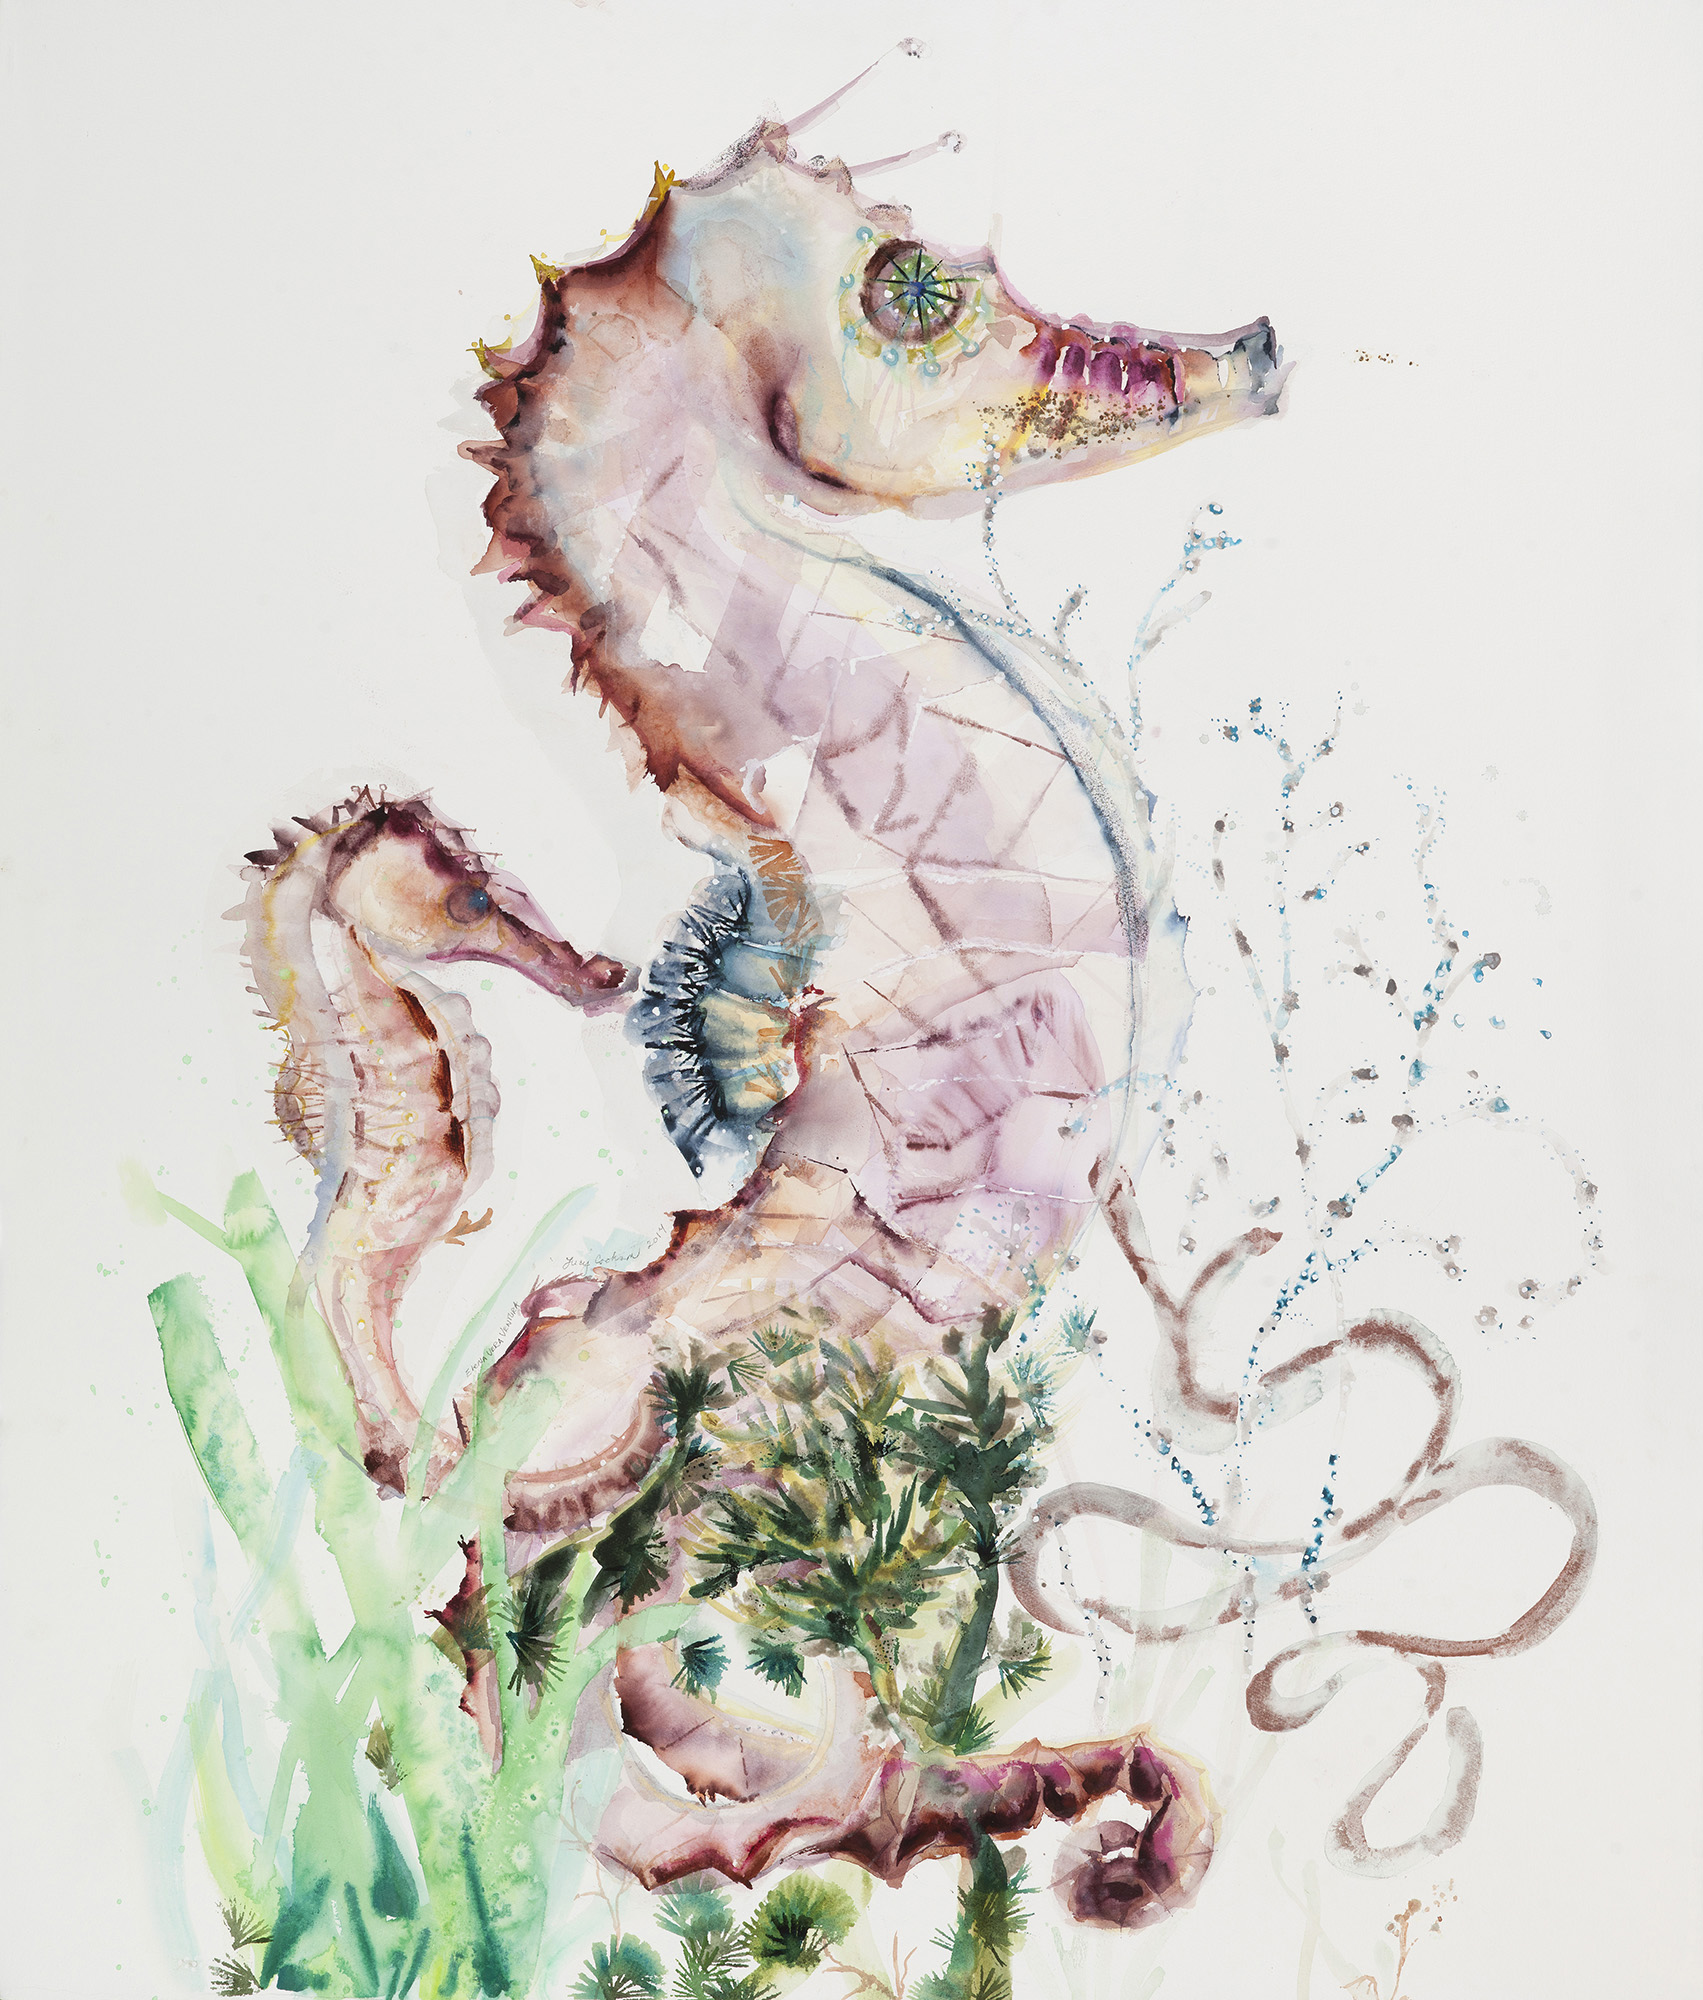 Seahorse with Baby, 2014, Watercolor on paper, 50 x 42.5 in.